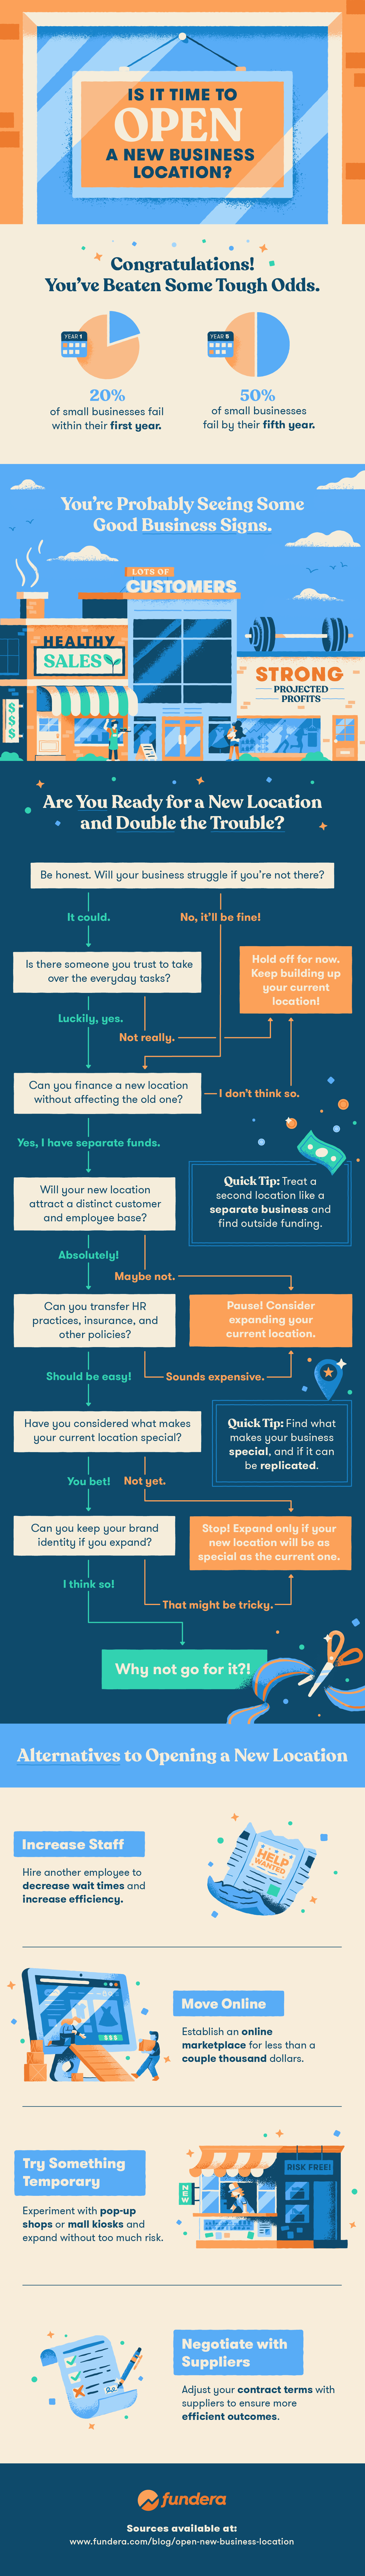 Use this flowchart to determine if your business should open a new location.